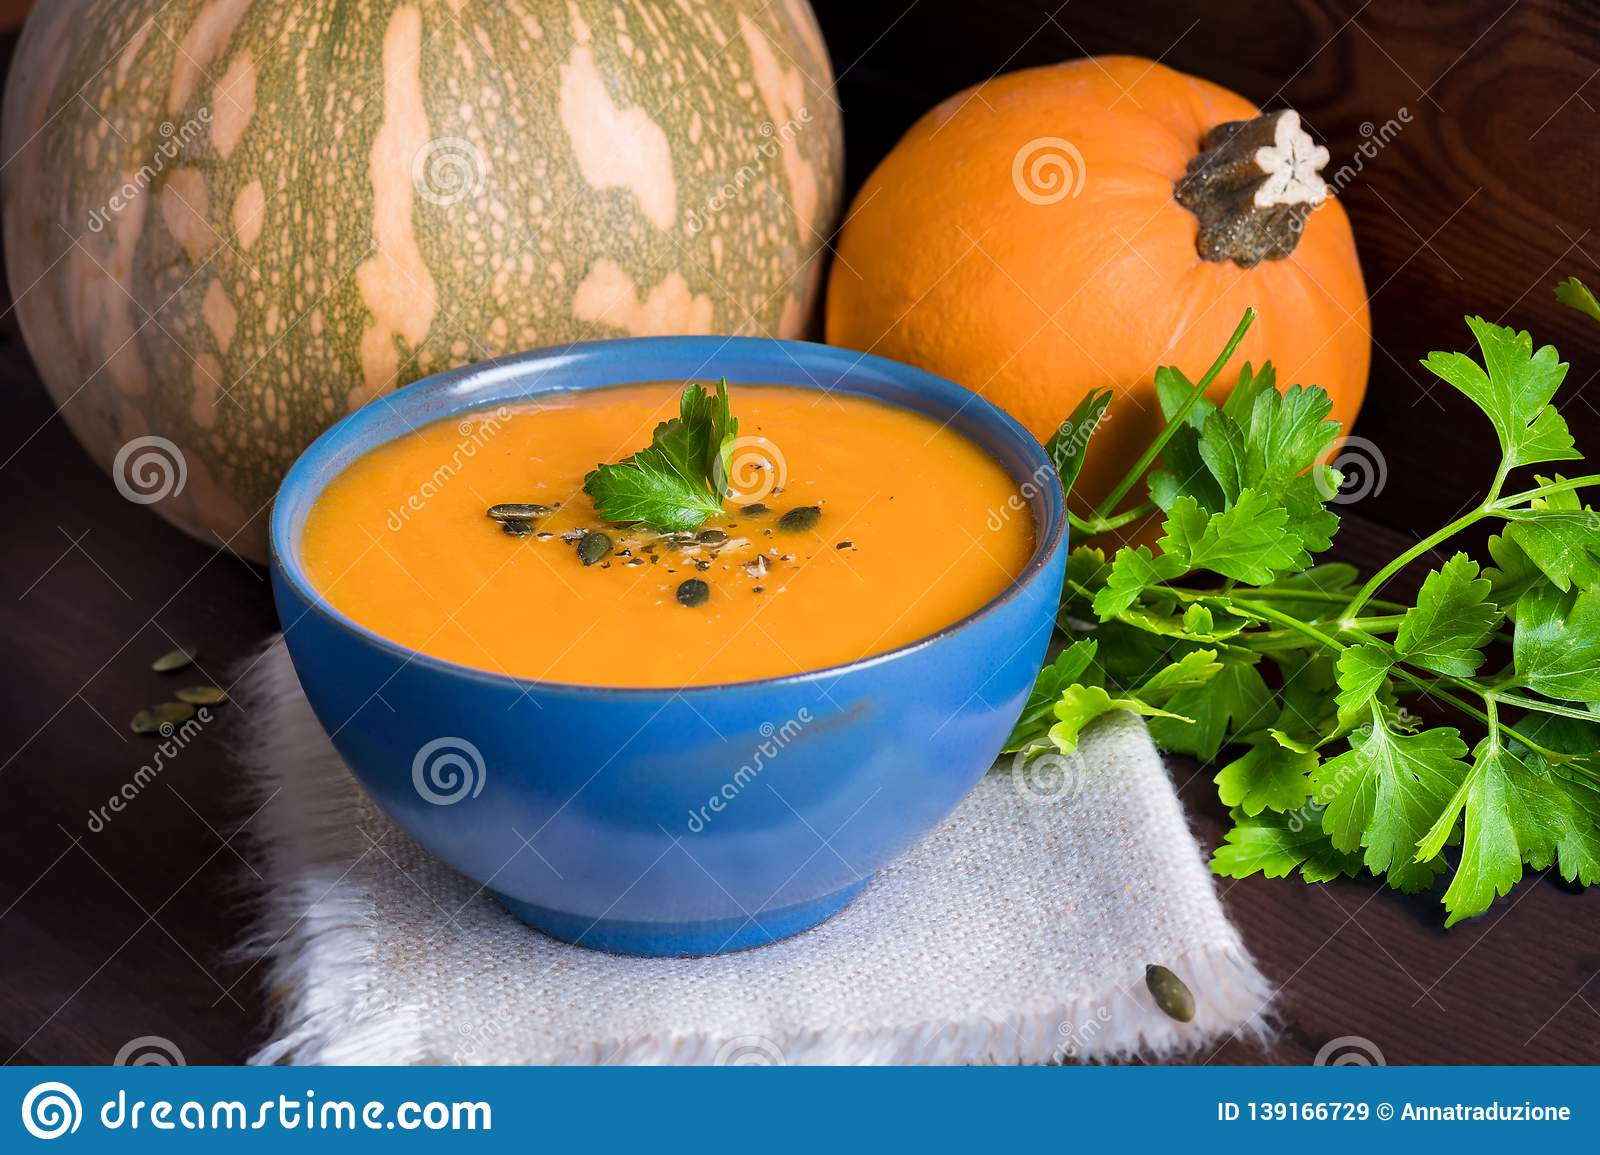 Pumpkin vegetarian soup in a blue bowl served with parsley, olive oil and pumpkin seeds on a dark wooden background